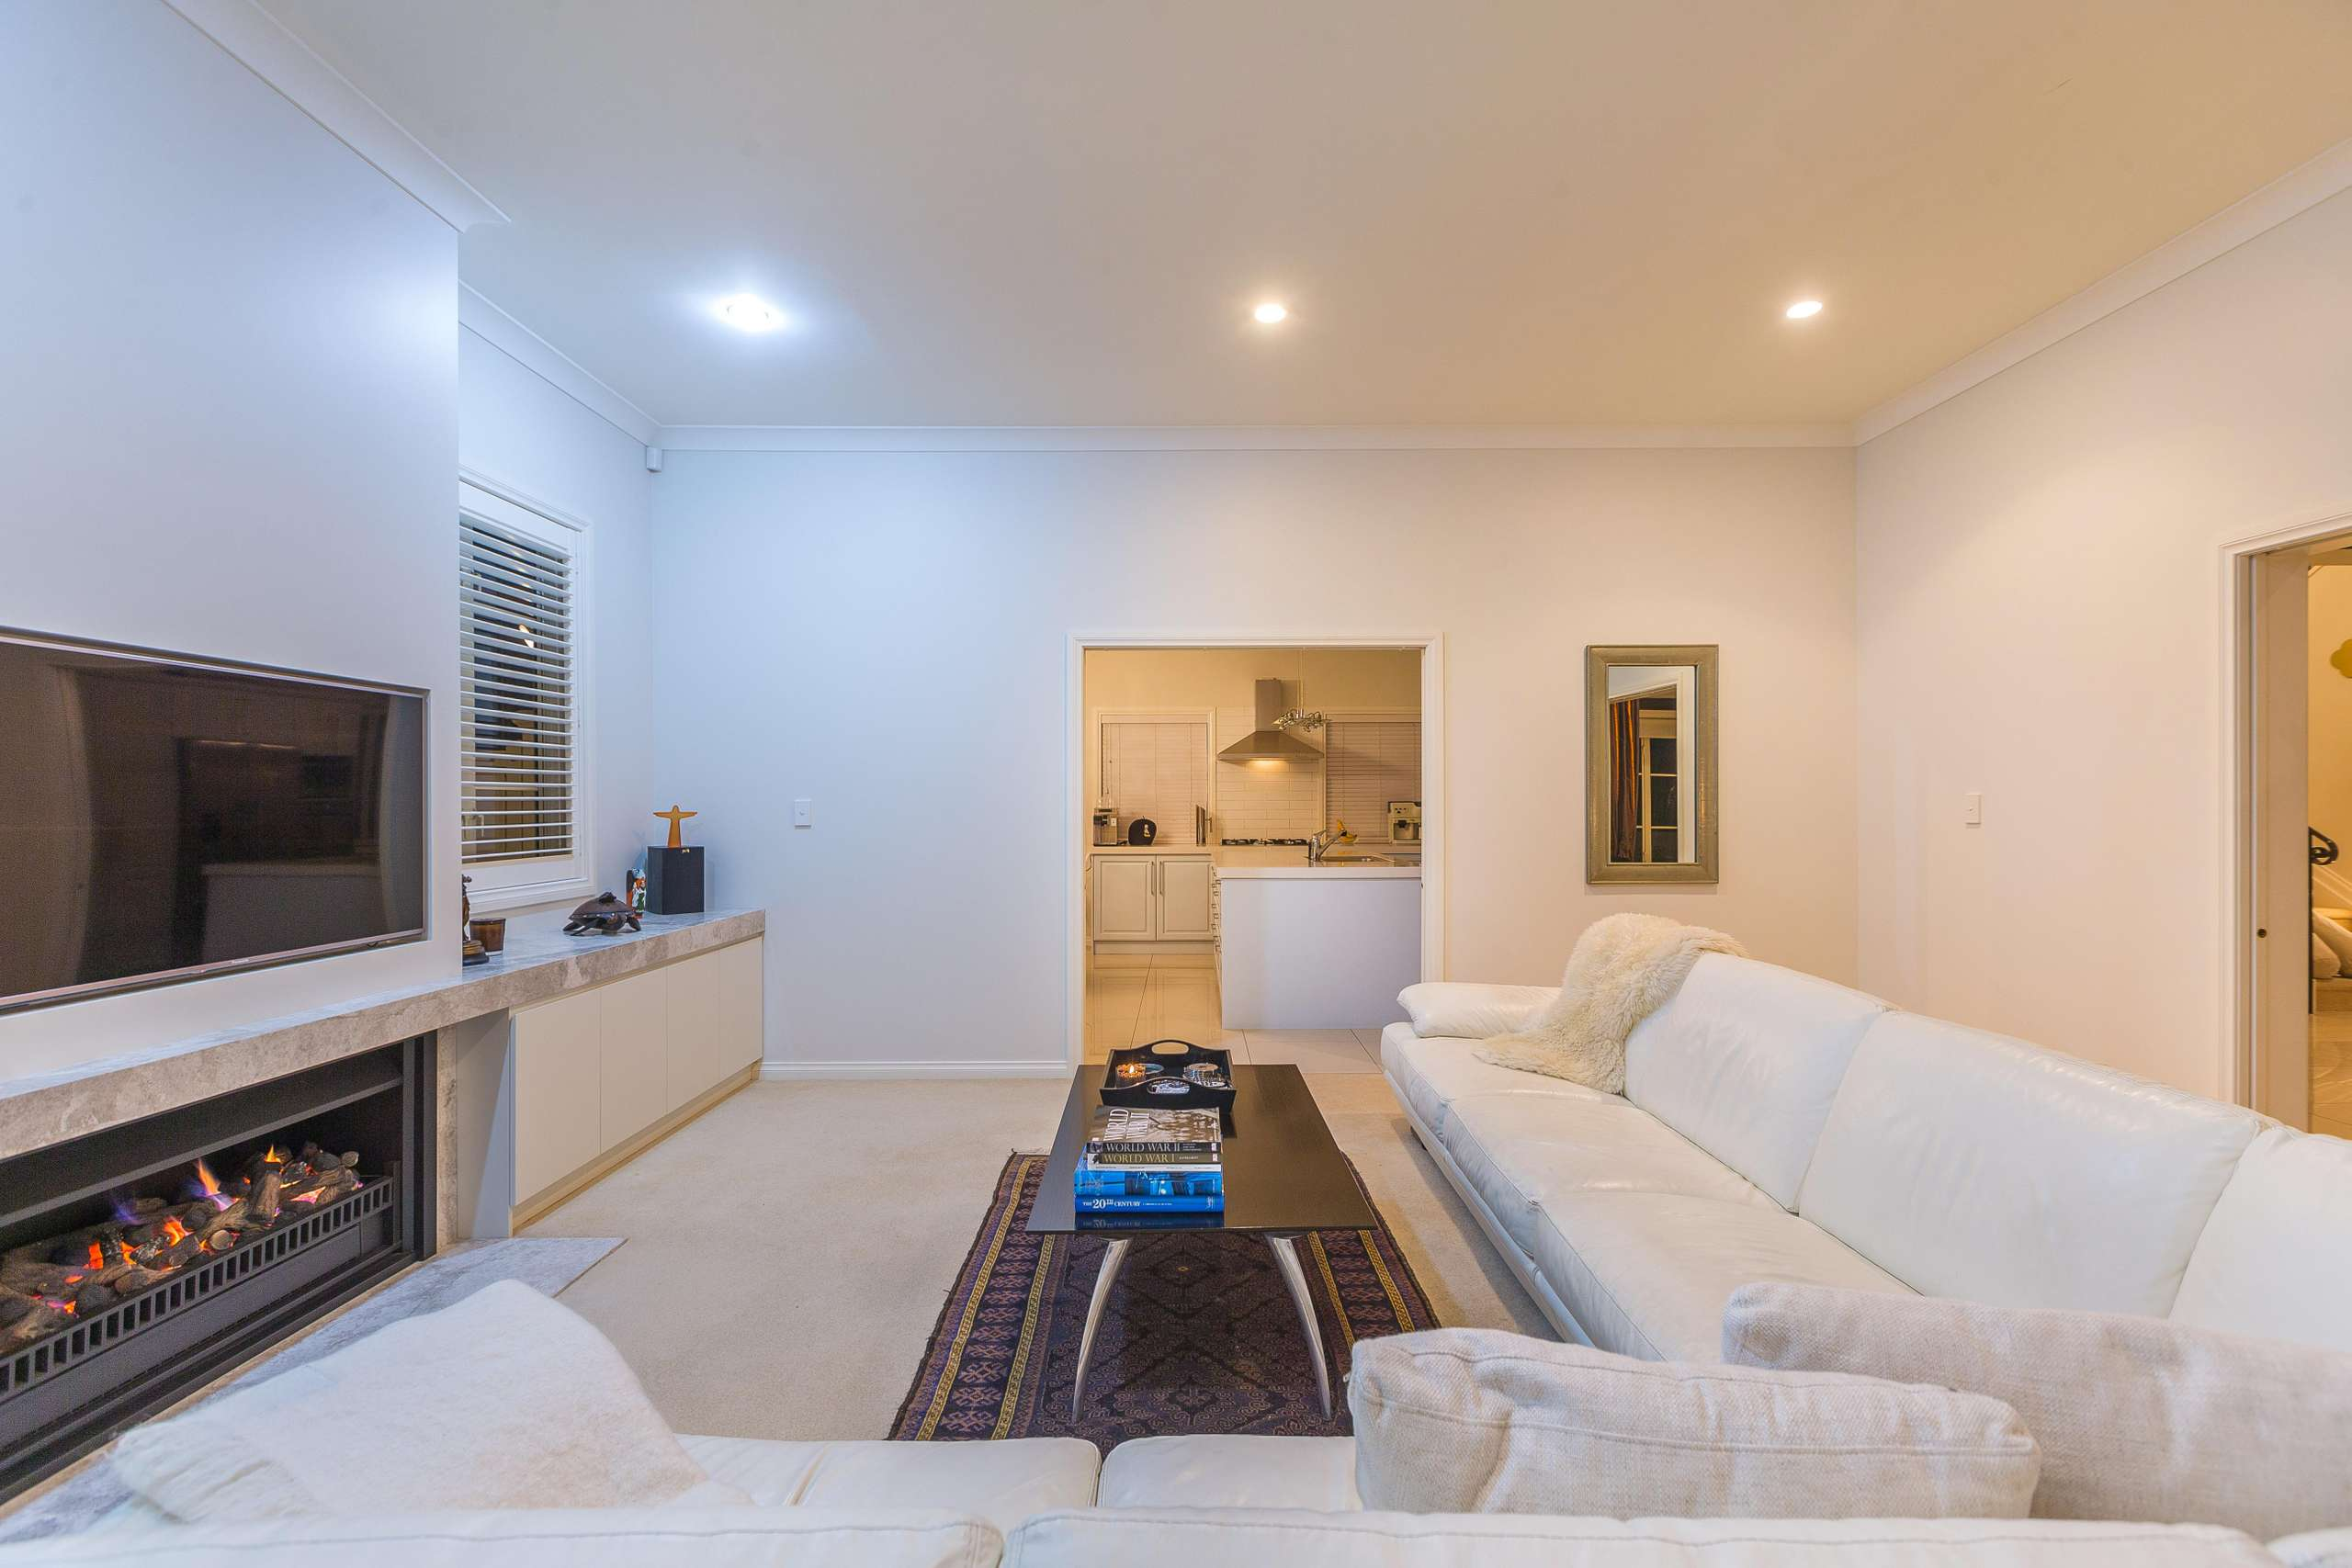 165B Long Drive, St Heliers, Auckland City 1071